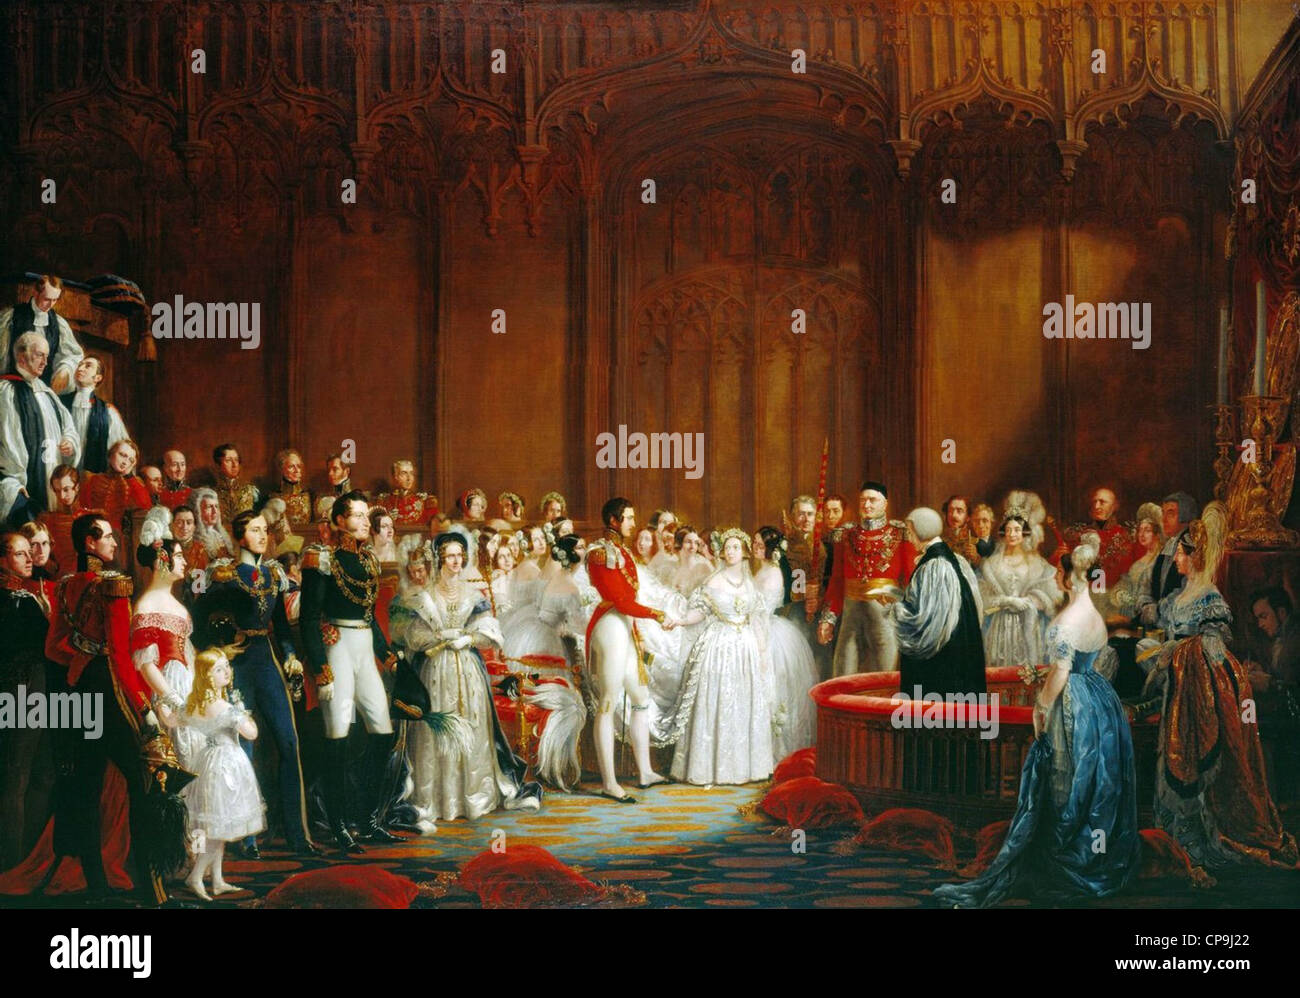 The Marriage of Queen Victoria, 10 February 1840 - Stock Image